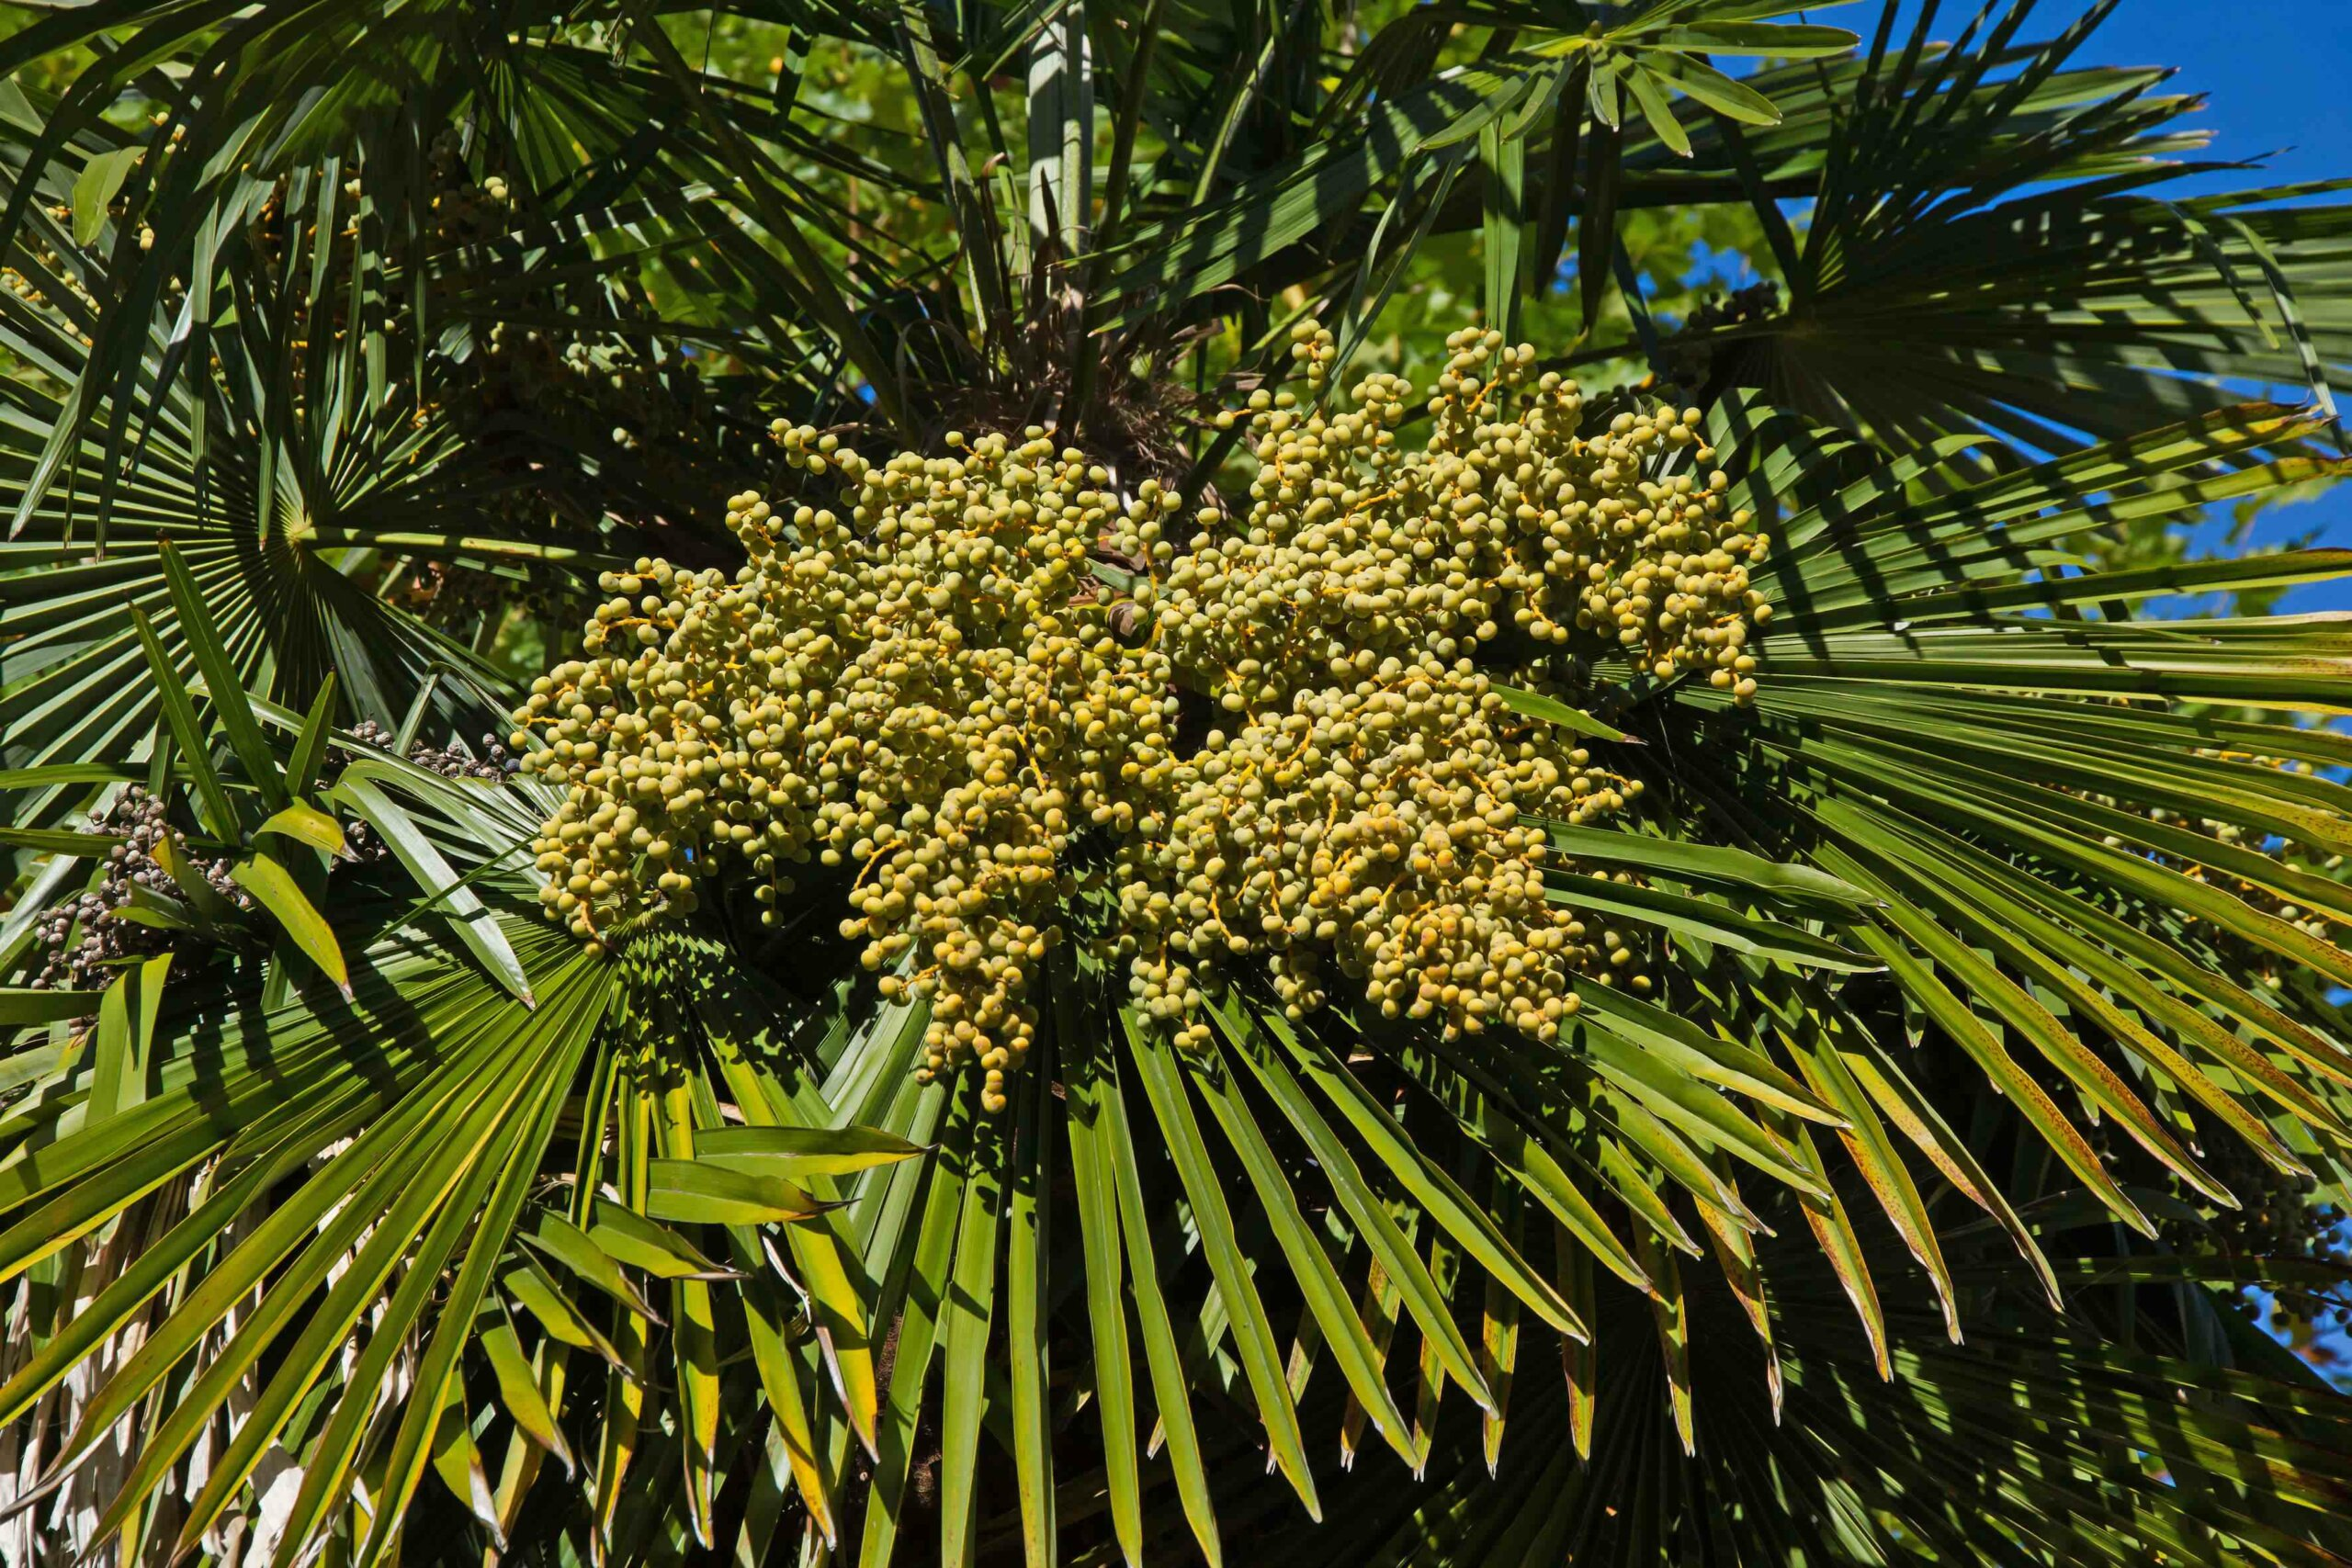 A close-up of the top of a saw palmetto tree, showing its leaves and berries.